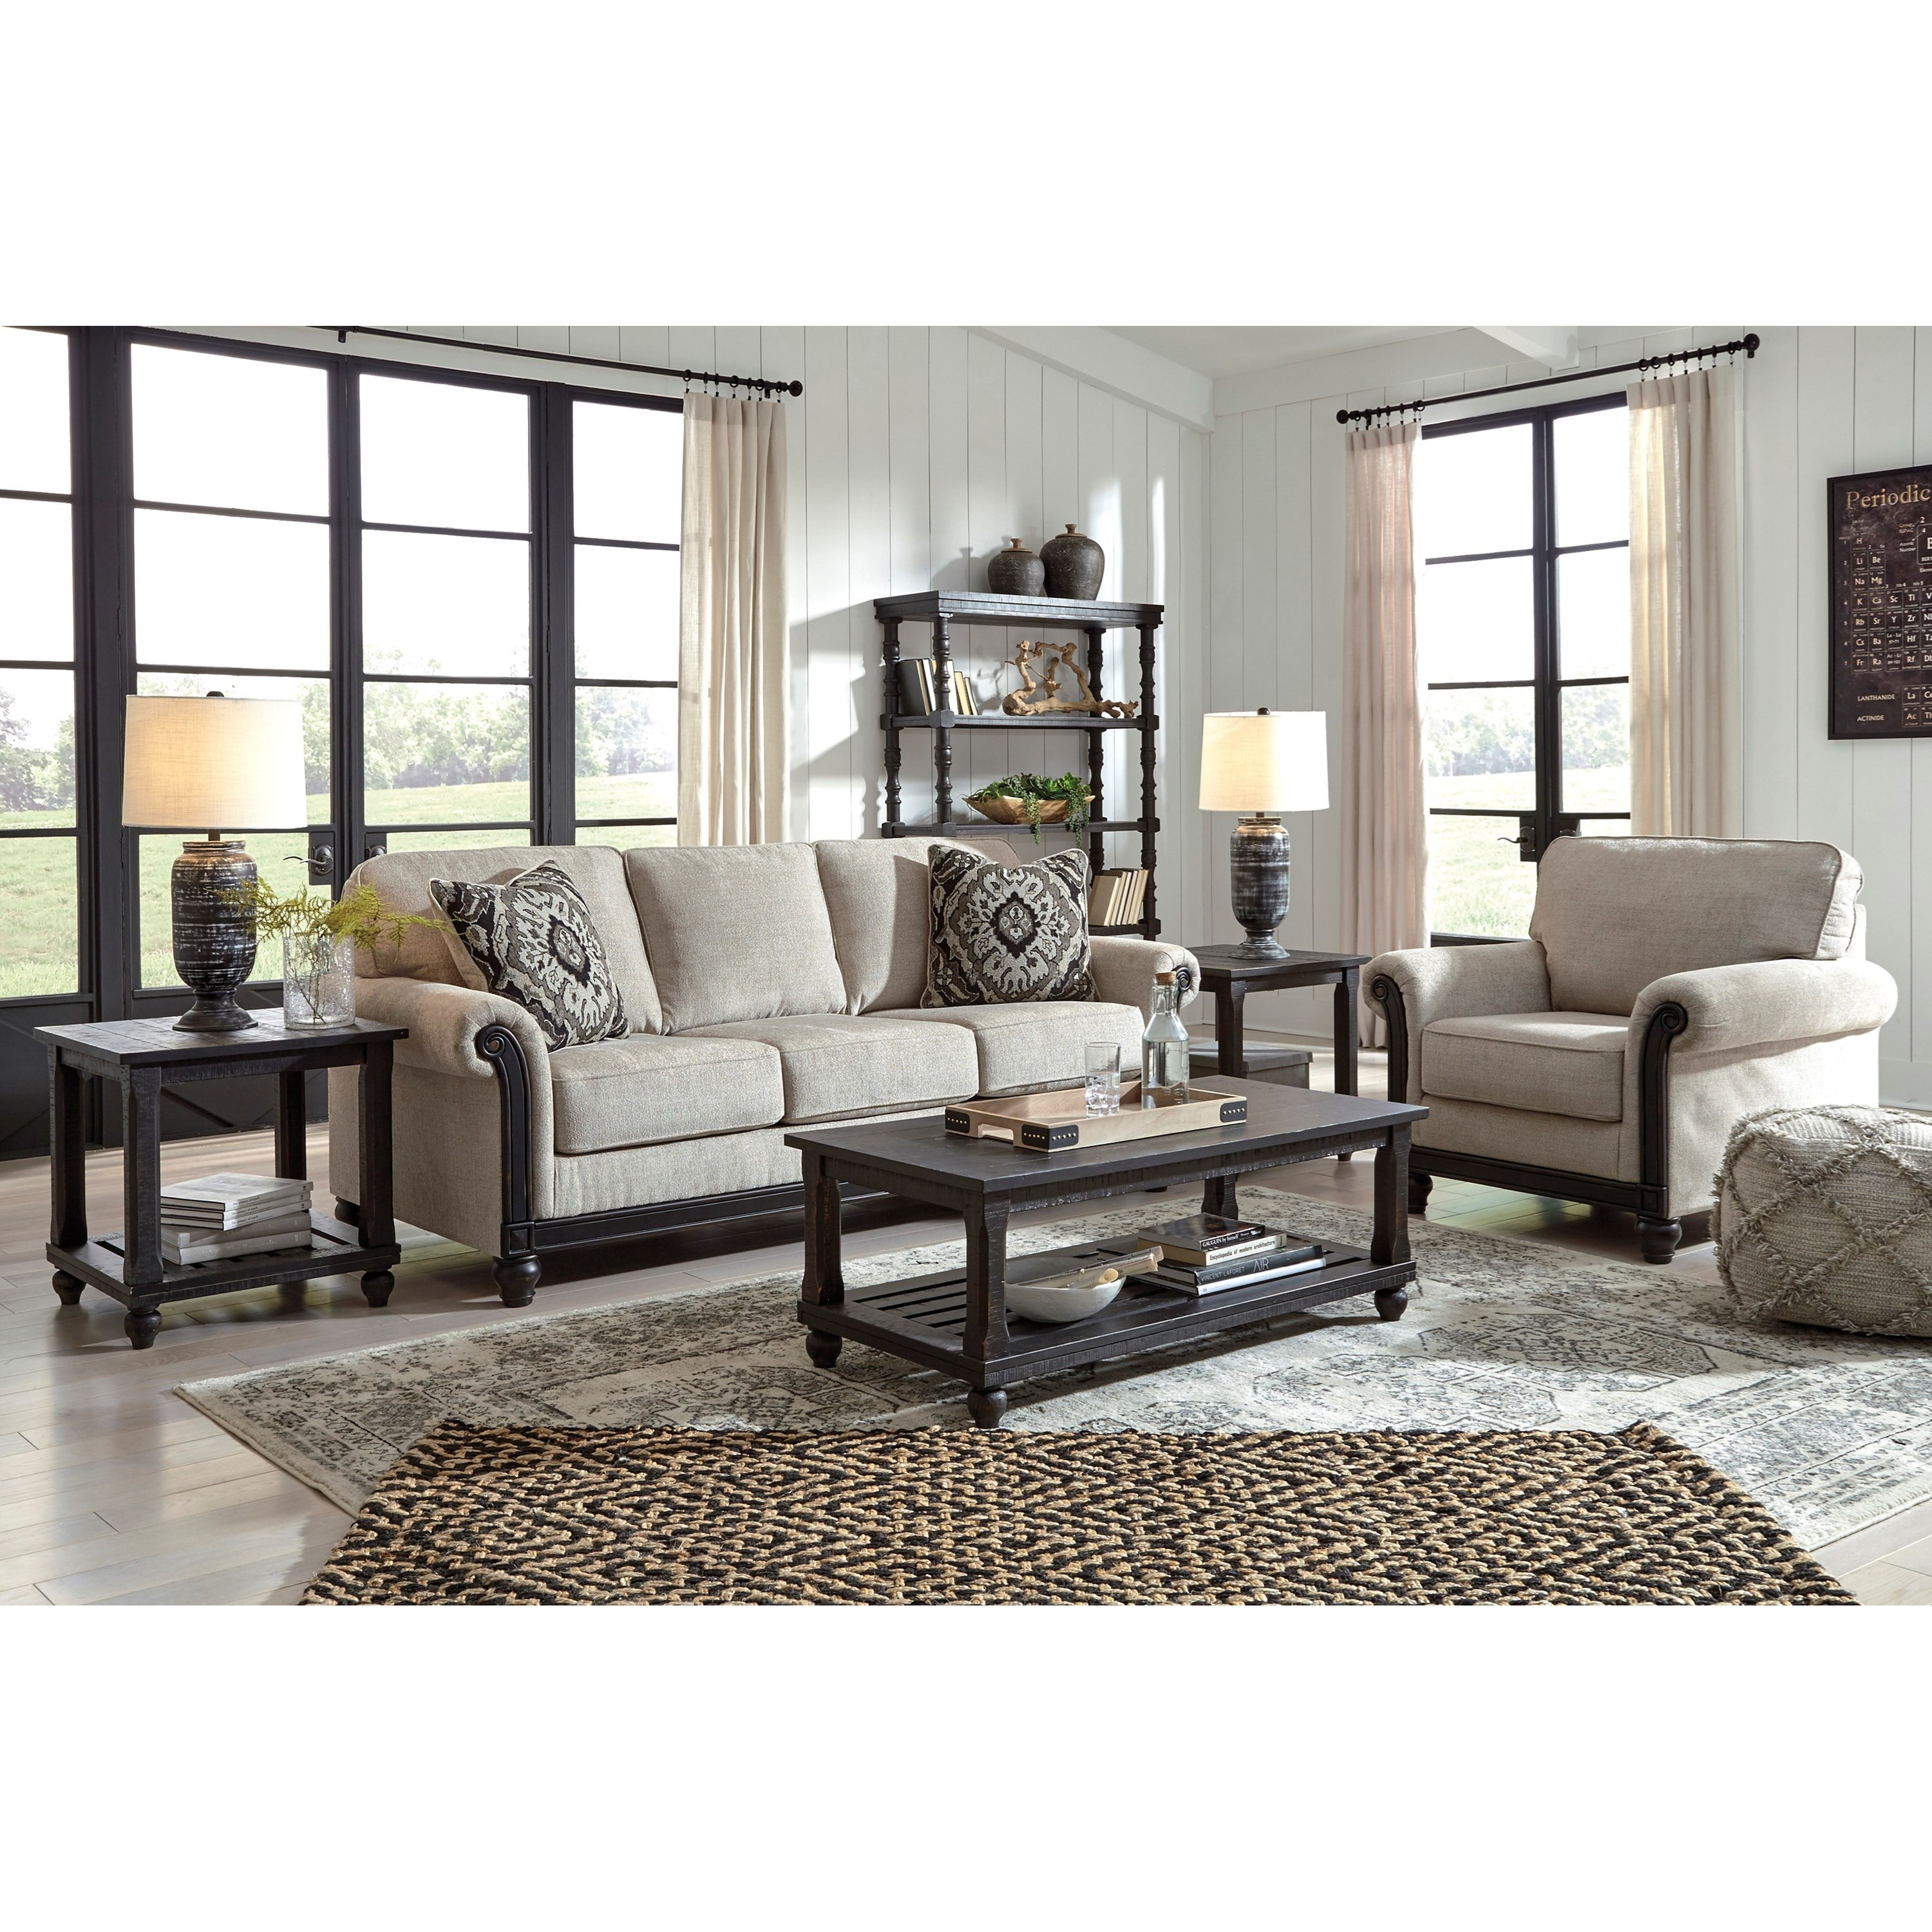 Benbrook Living Room Group by Signature Design by Ashley at Zak's Warehouse Clearance Center